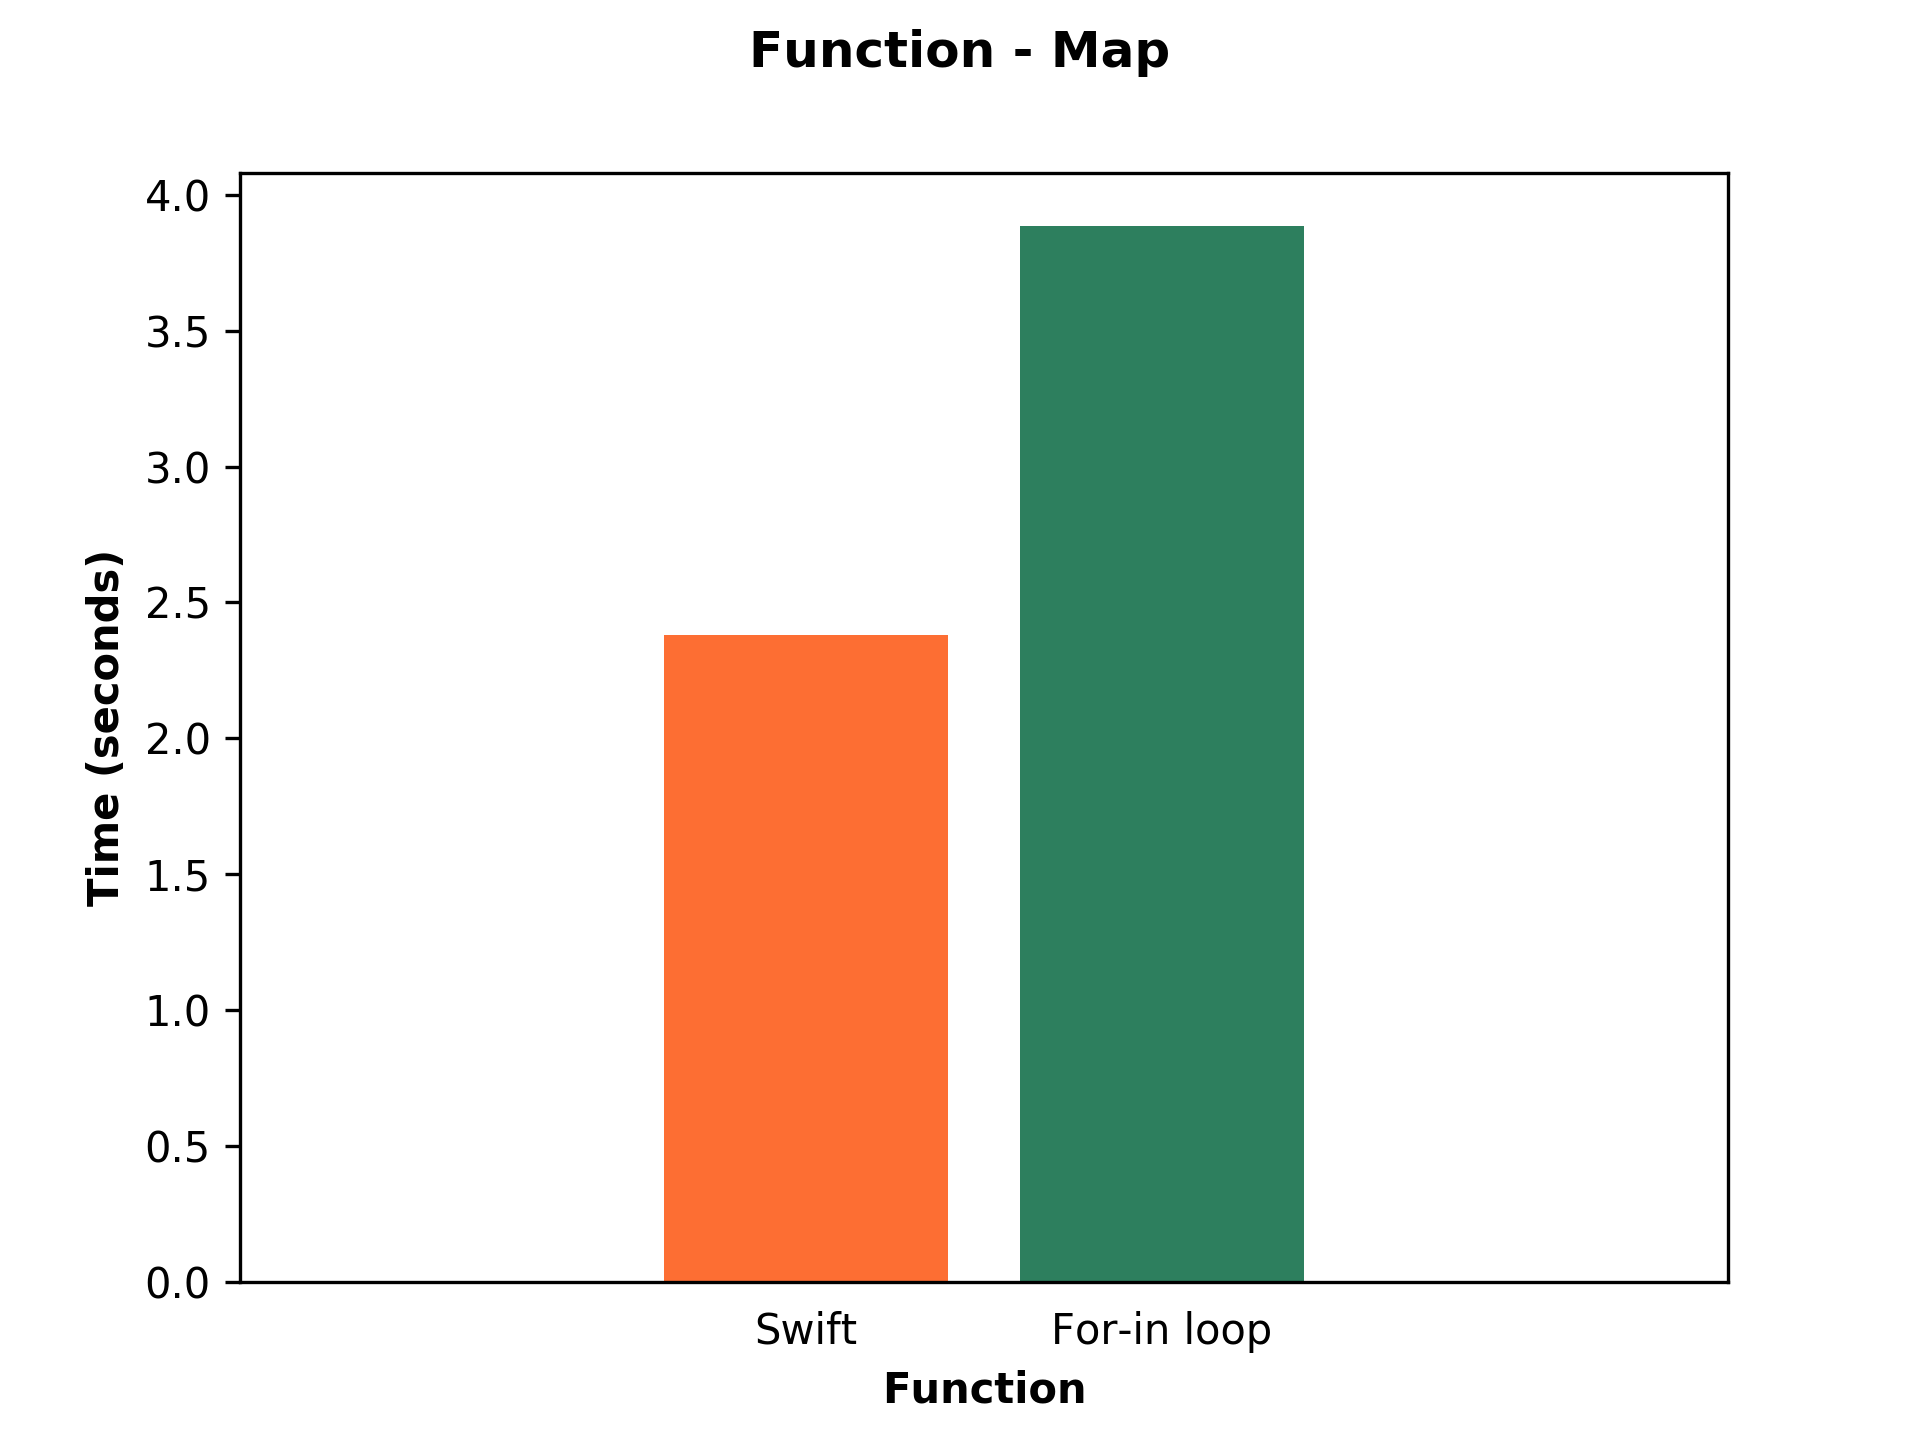 Bar chart shows performance of Swift and For-in loop of map function.